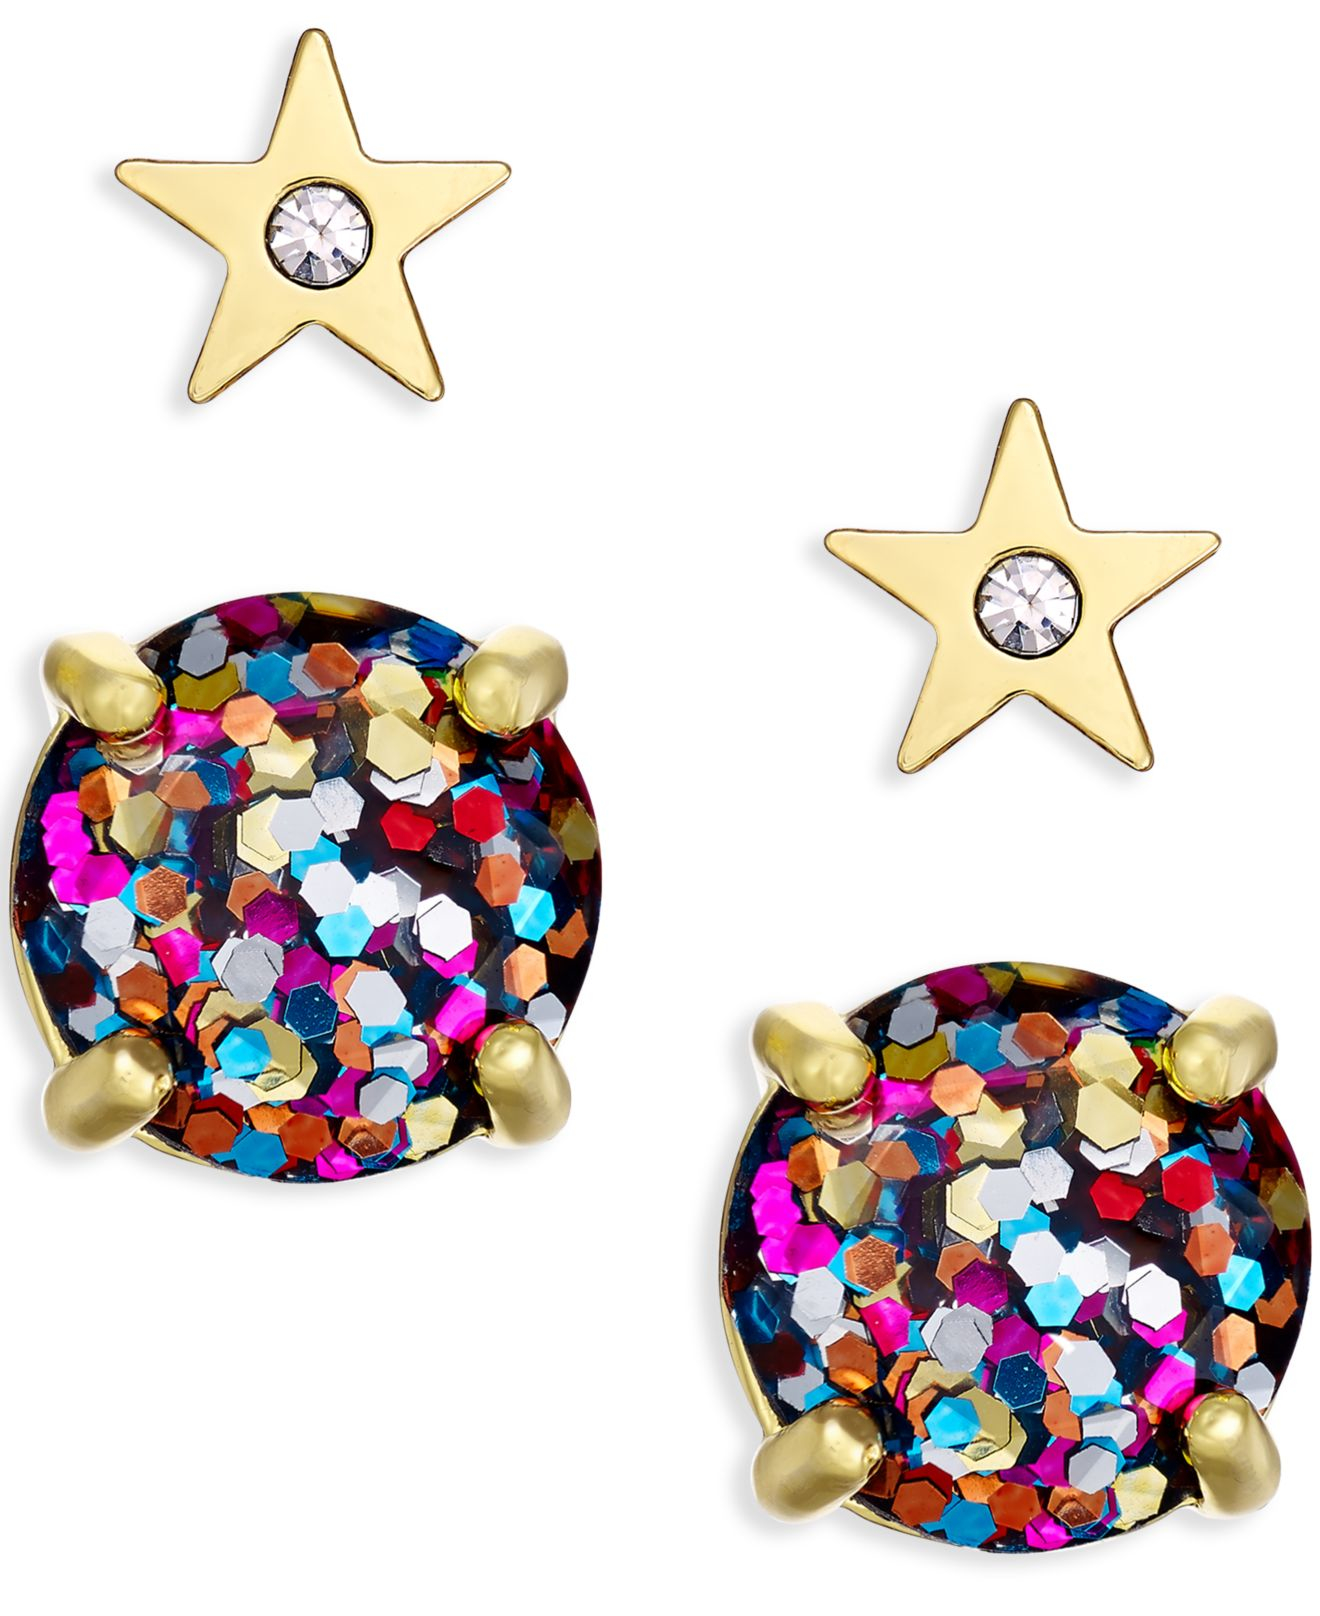 360ccc3d5 Kate Spade Gold-tone Crystal Star And Glitter Stud Earring Set - Lyst